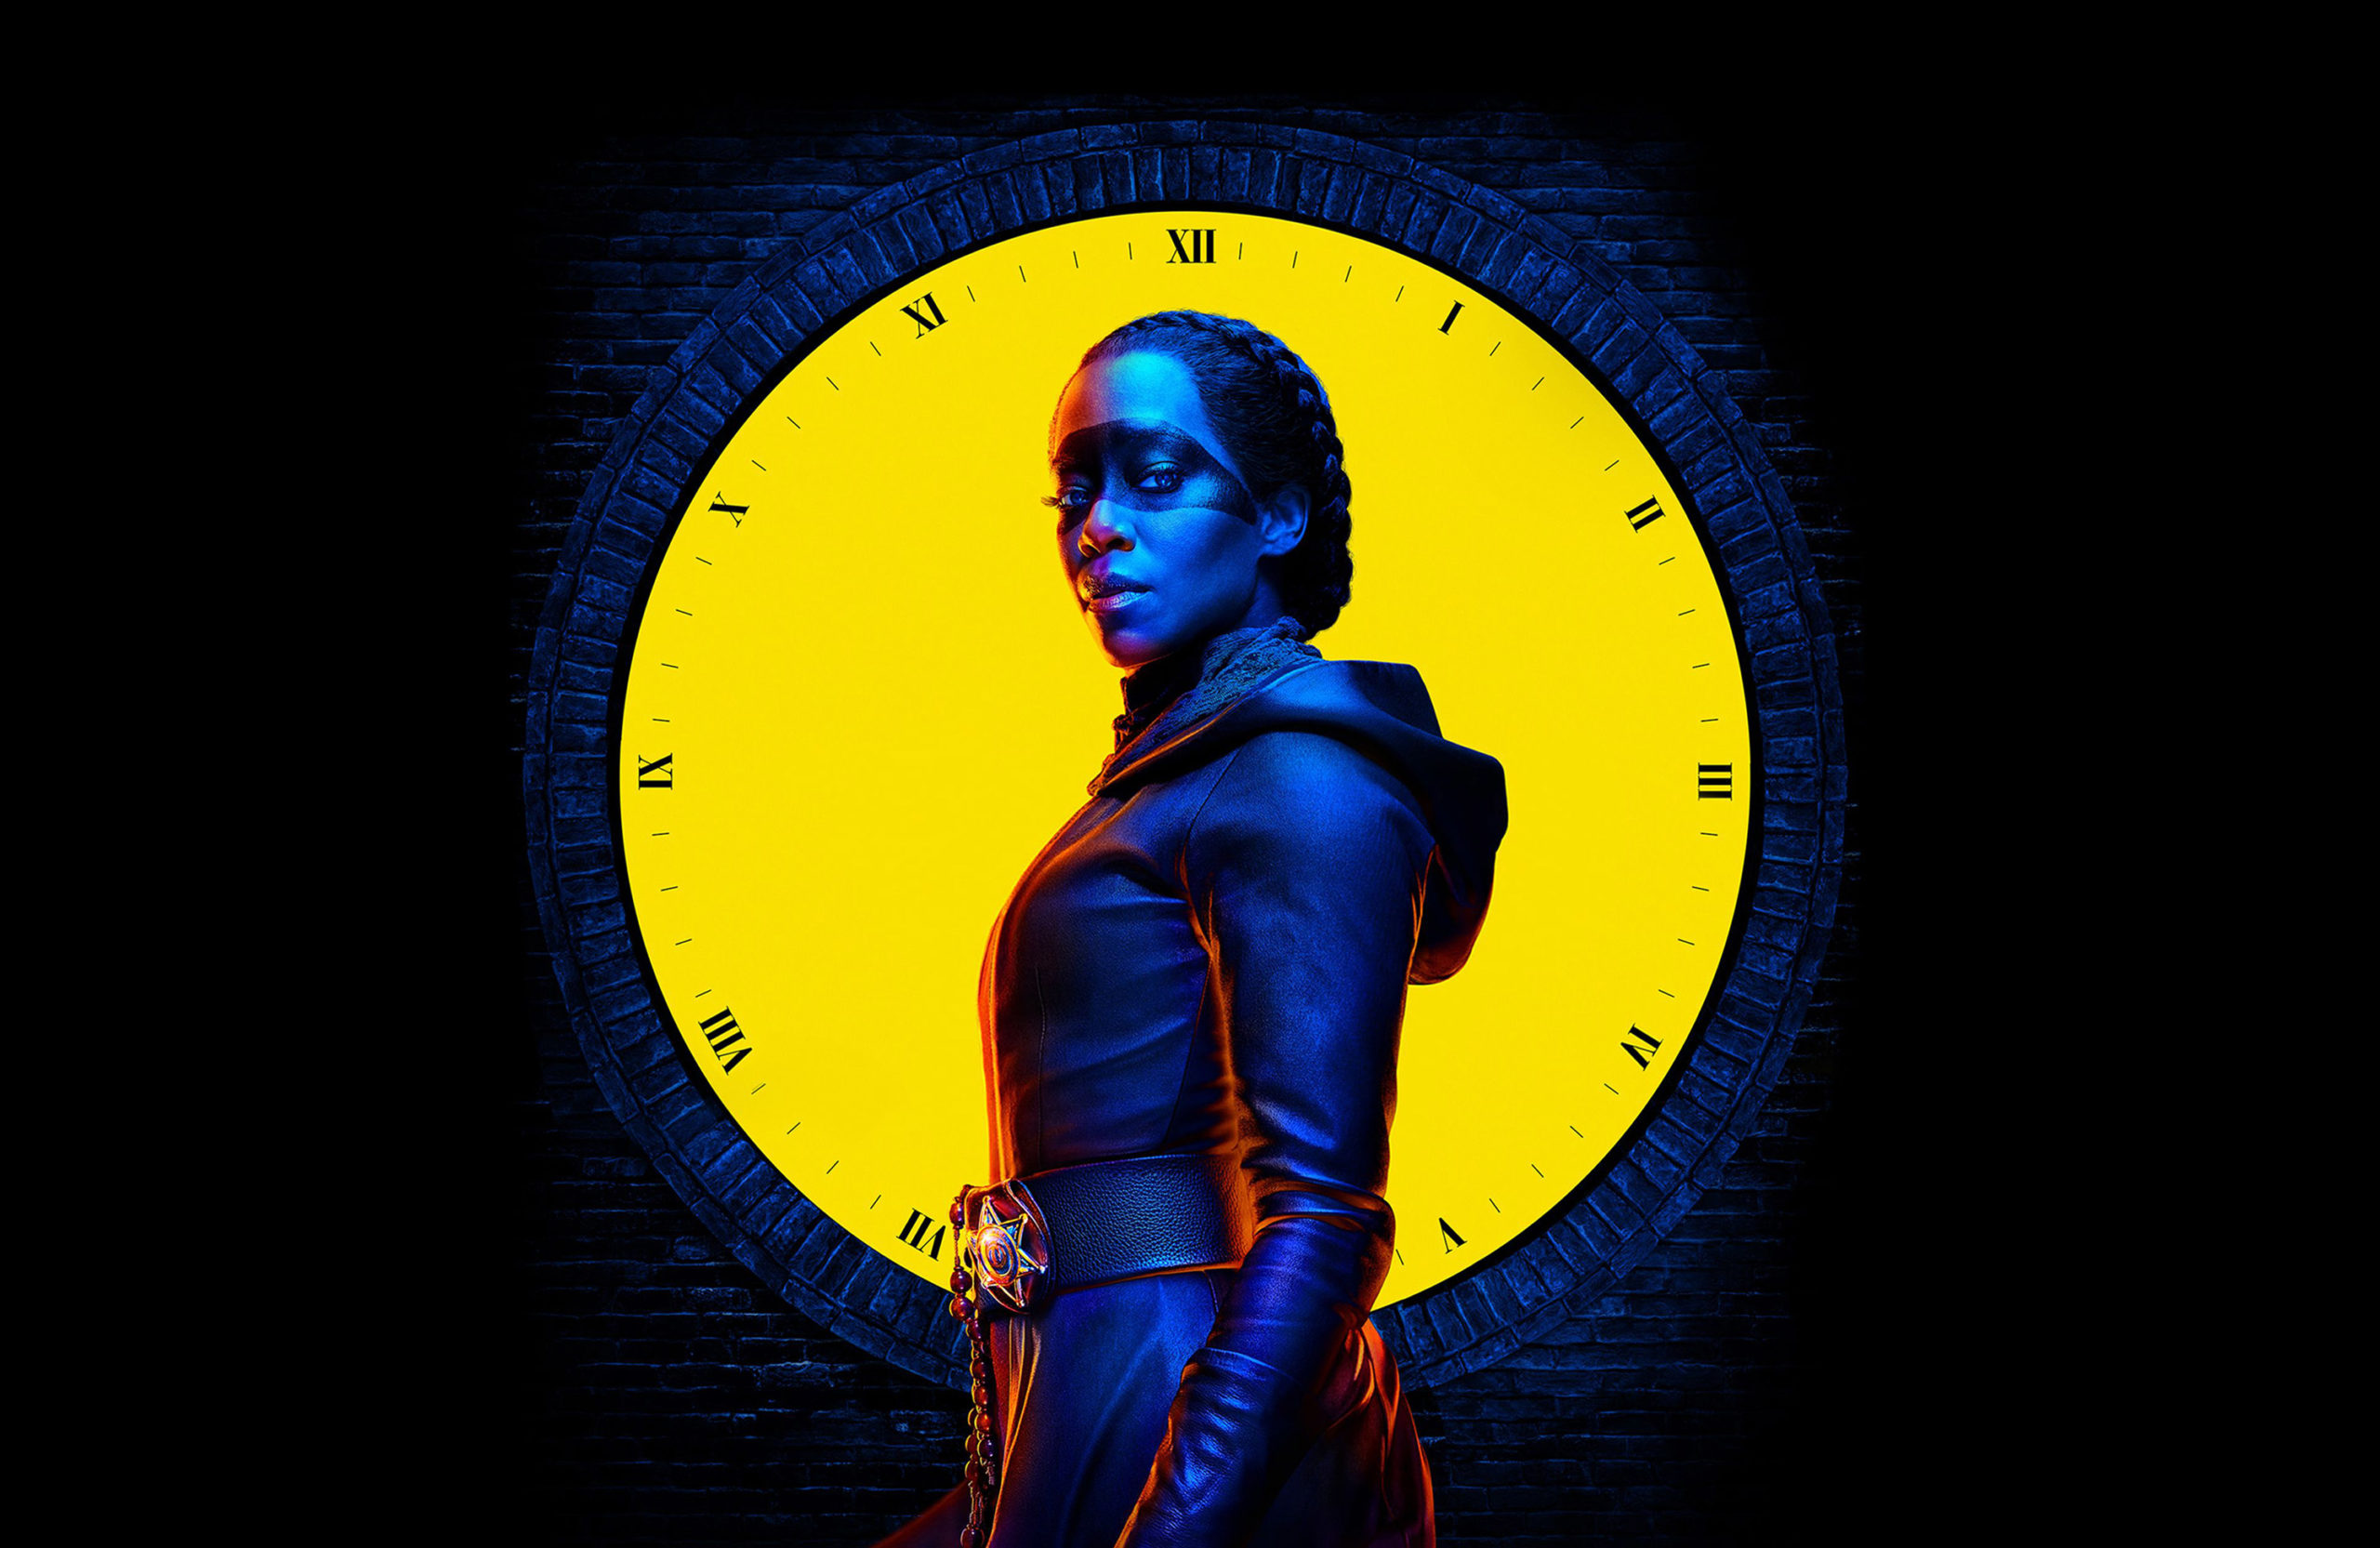 Regina King as Sister Night in front of a yellow clock